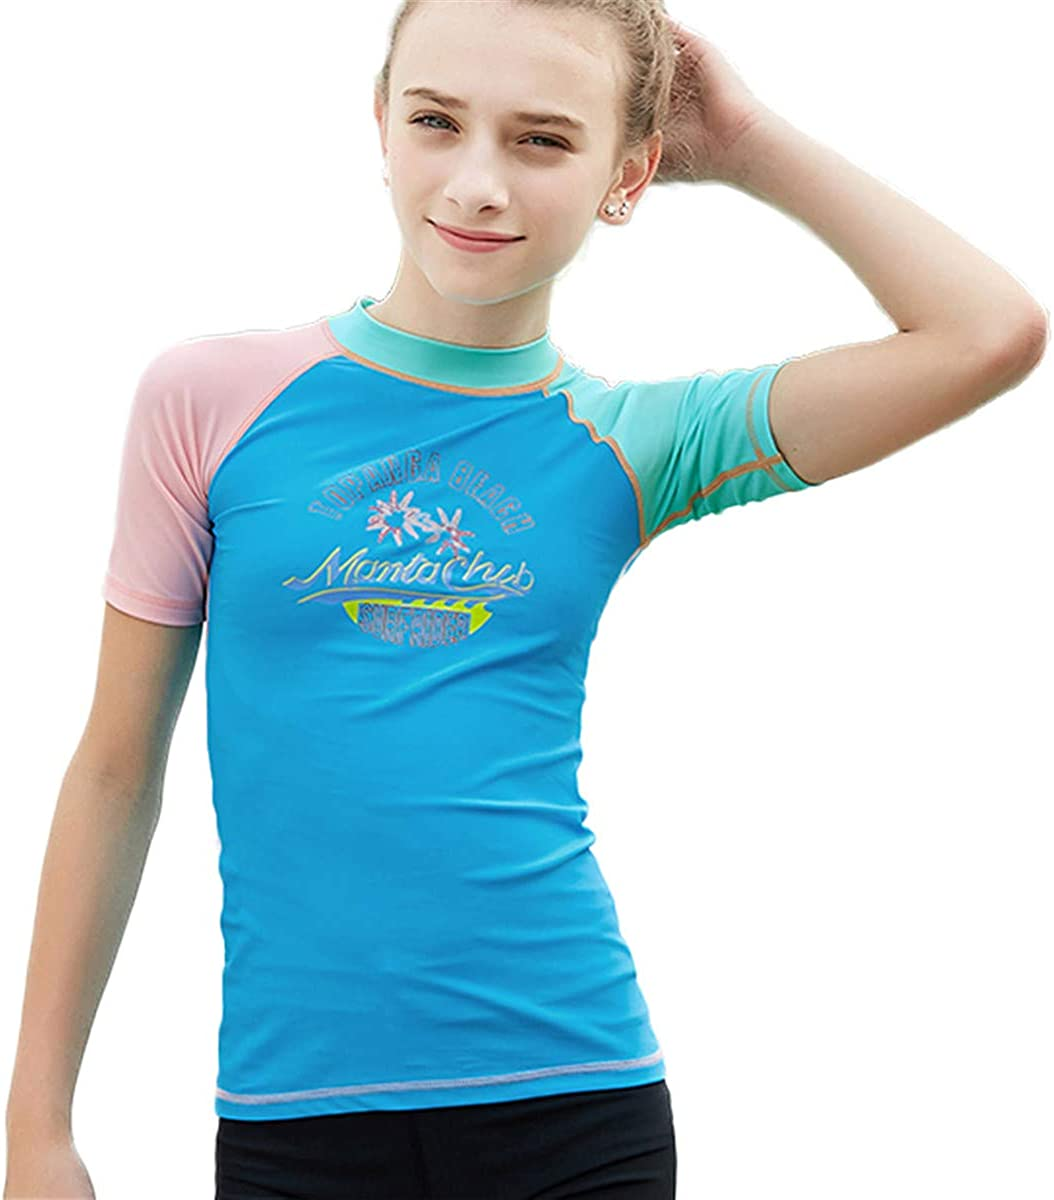 Sun Protection Long Sleeve Rash Guard WaveGirl Shoulder Zip Athletic Fit Activewear ShadeSuits Girls Swimsuit Shirt UPF 50